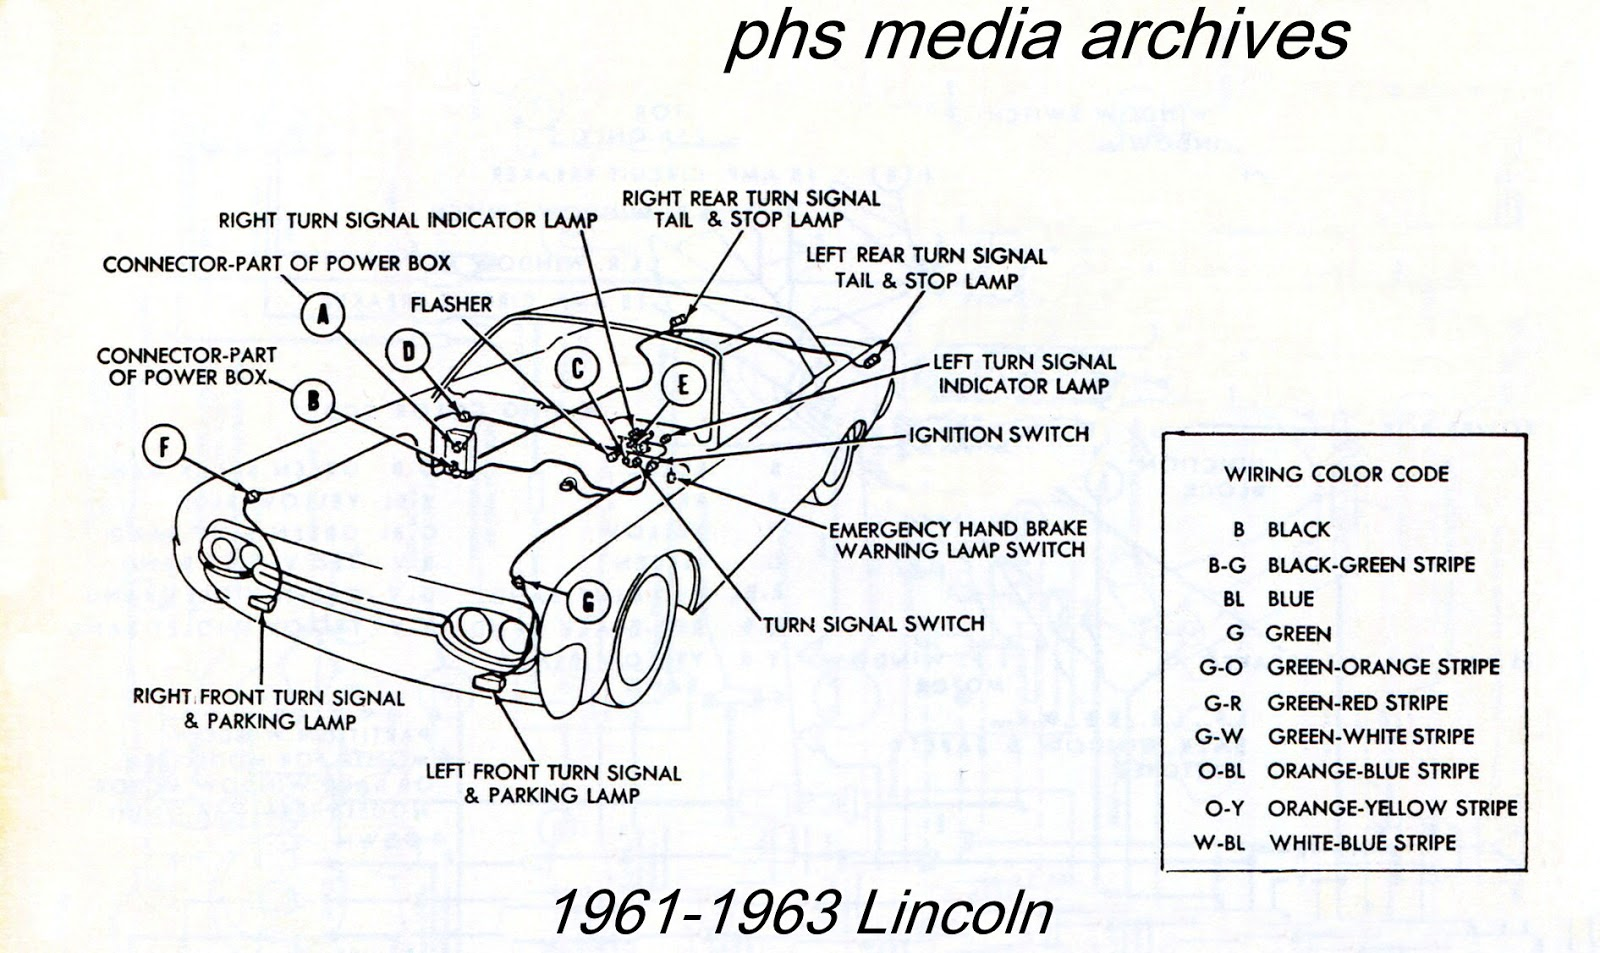 linc%2B%2Bc239 tech series 1960 1964 lincoln wiring diagrams phscollectorcarworld lincoln auto greaser wiring diagram at bayanpartner.co